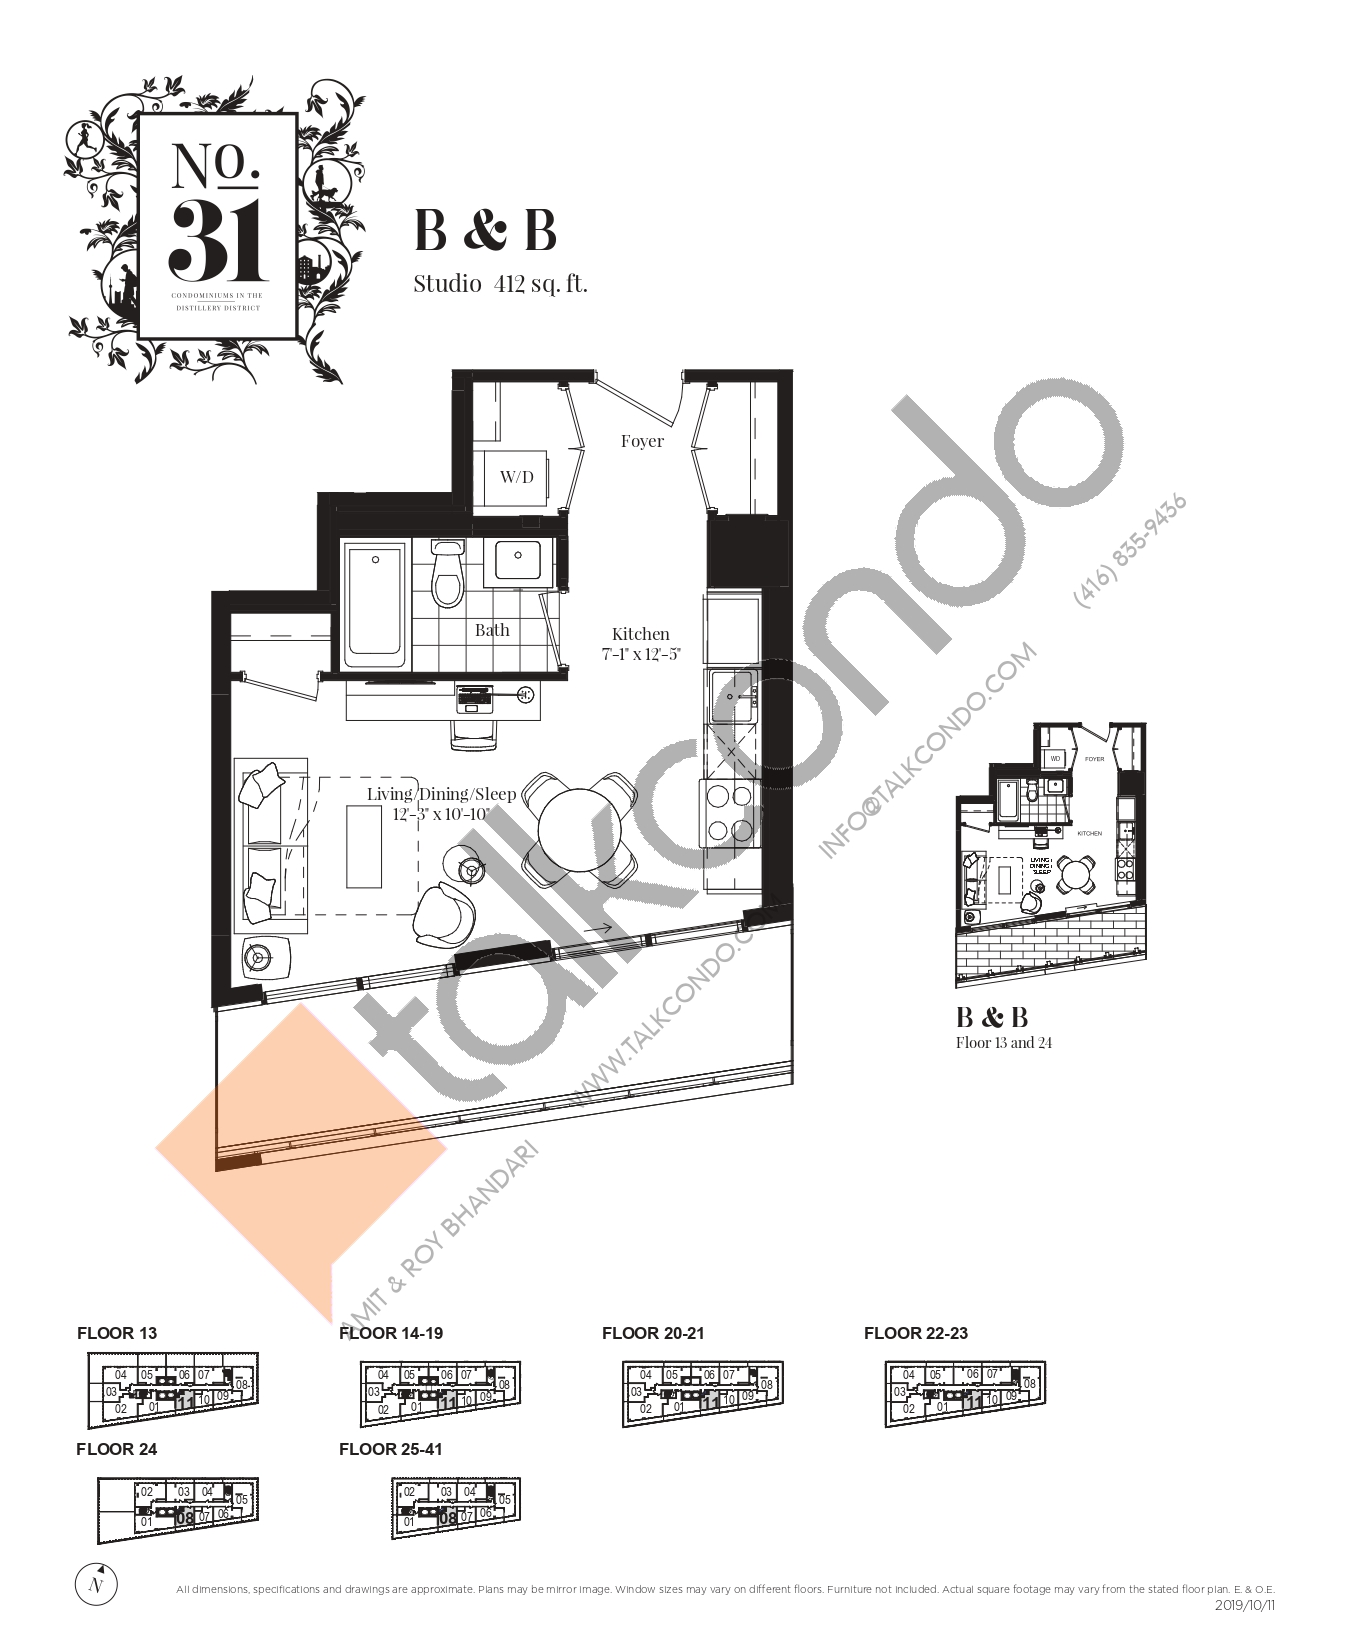 B & B Floor Plan at No. 31 Condos - 412 sq.ft